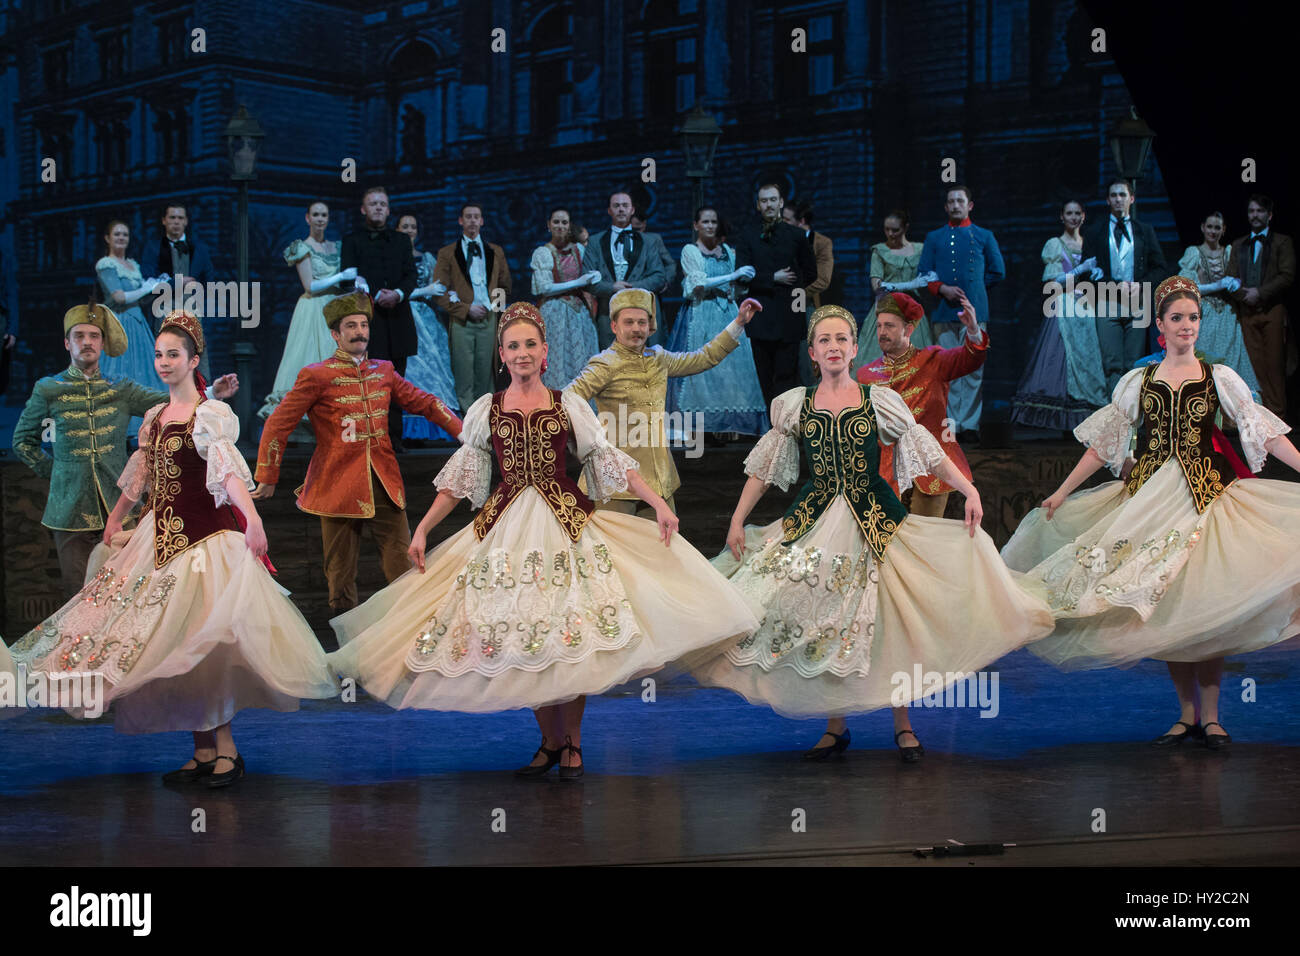 Budapest, Hungary. 31st Mar, 2017. Members of the Hungarian National Dance Ensemble perform during a dress rehearsal - Stock Image